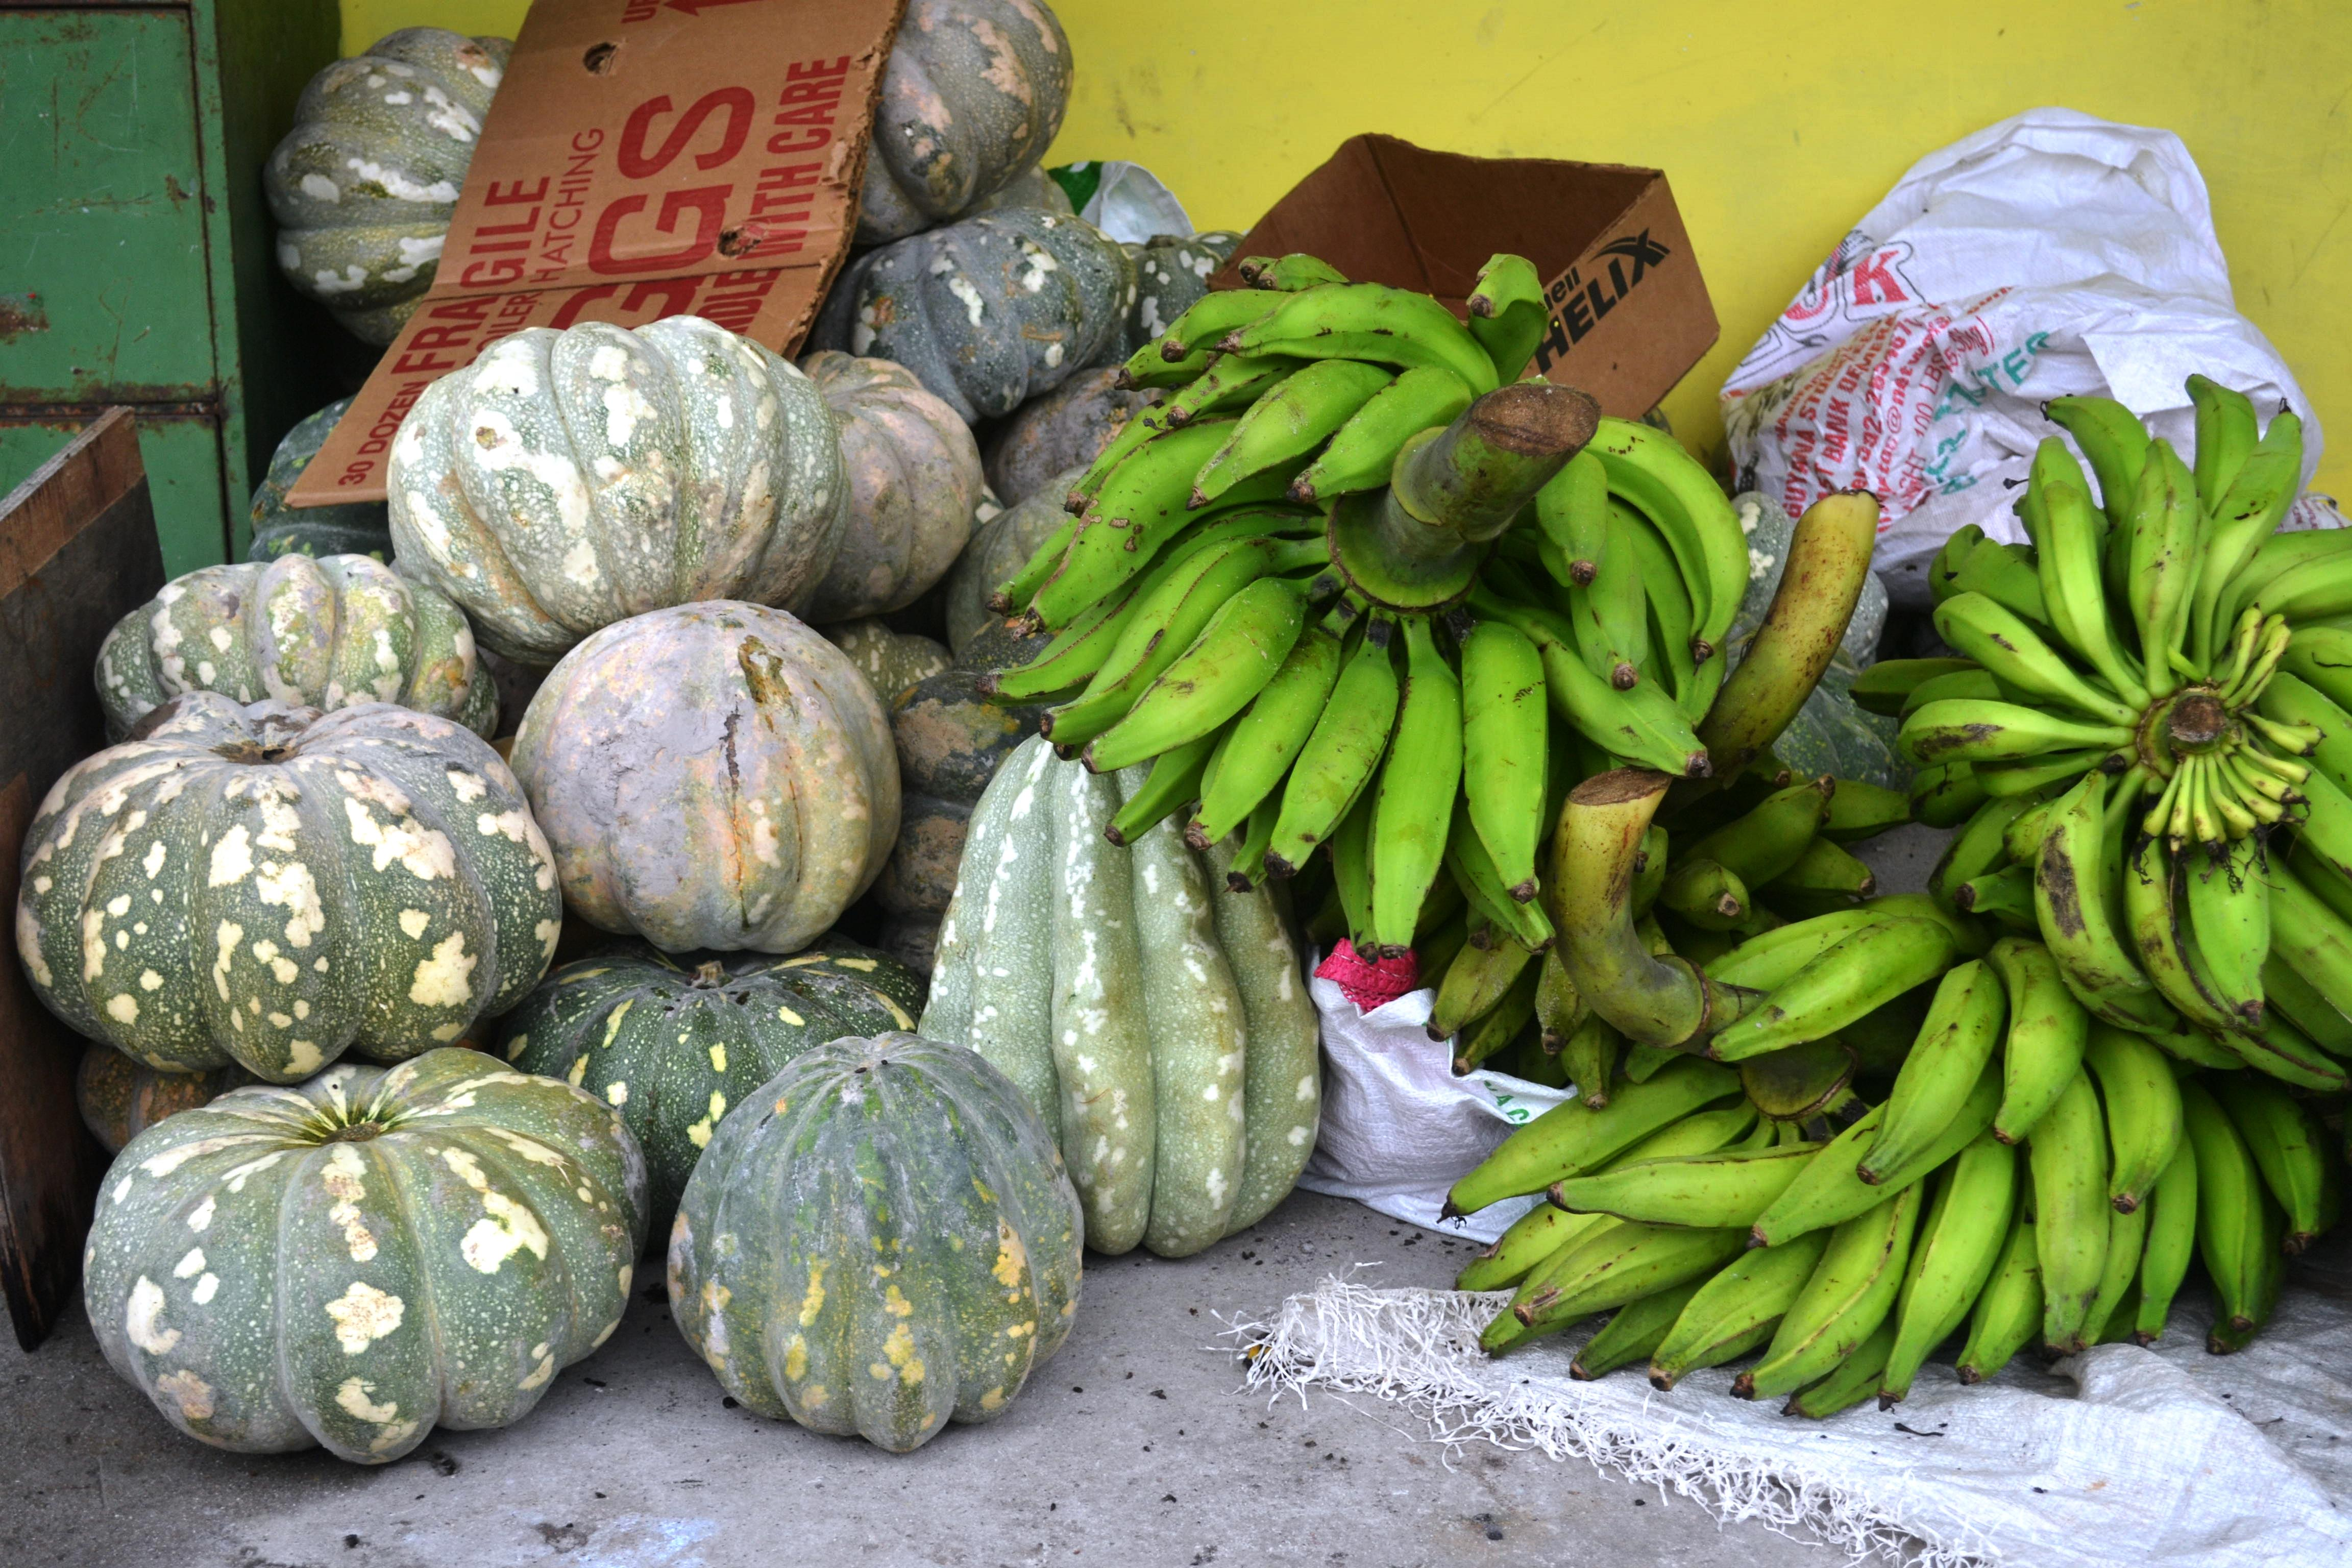 Some of the crops from Mr. Khedu's farm